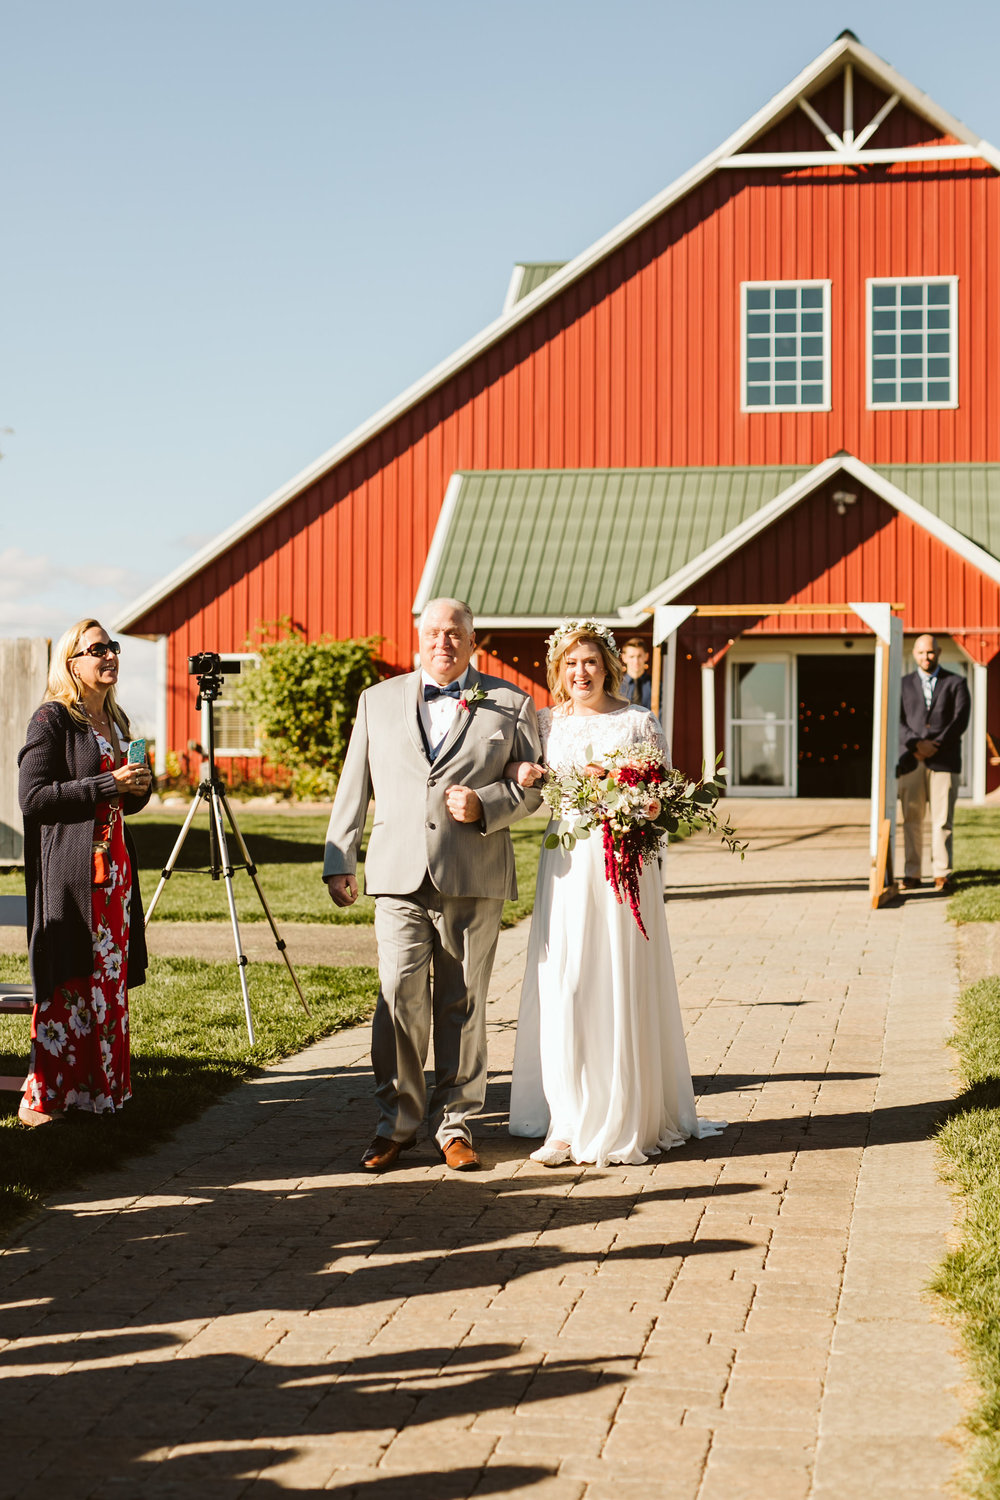 Chaska Minnesota Wedding Venue - The Outpost Center-424.jpg